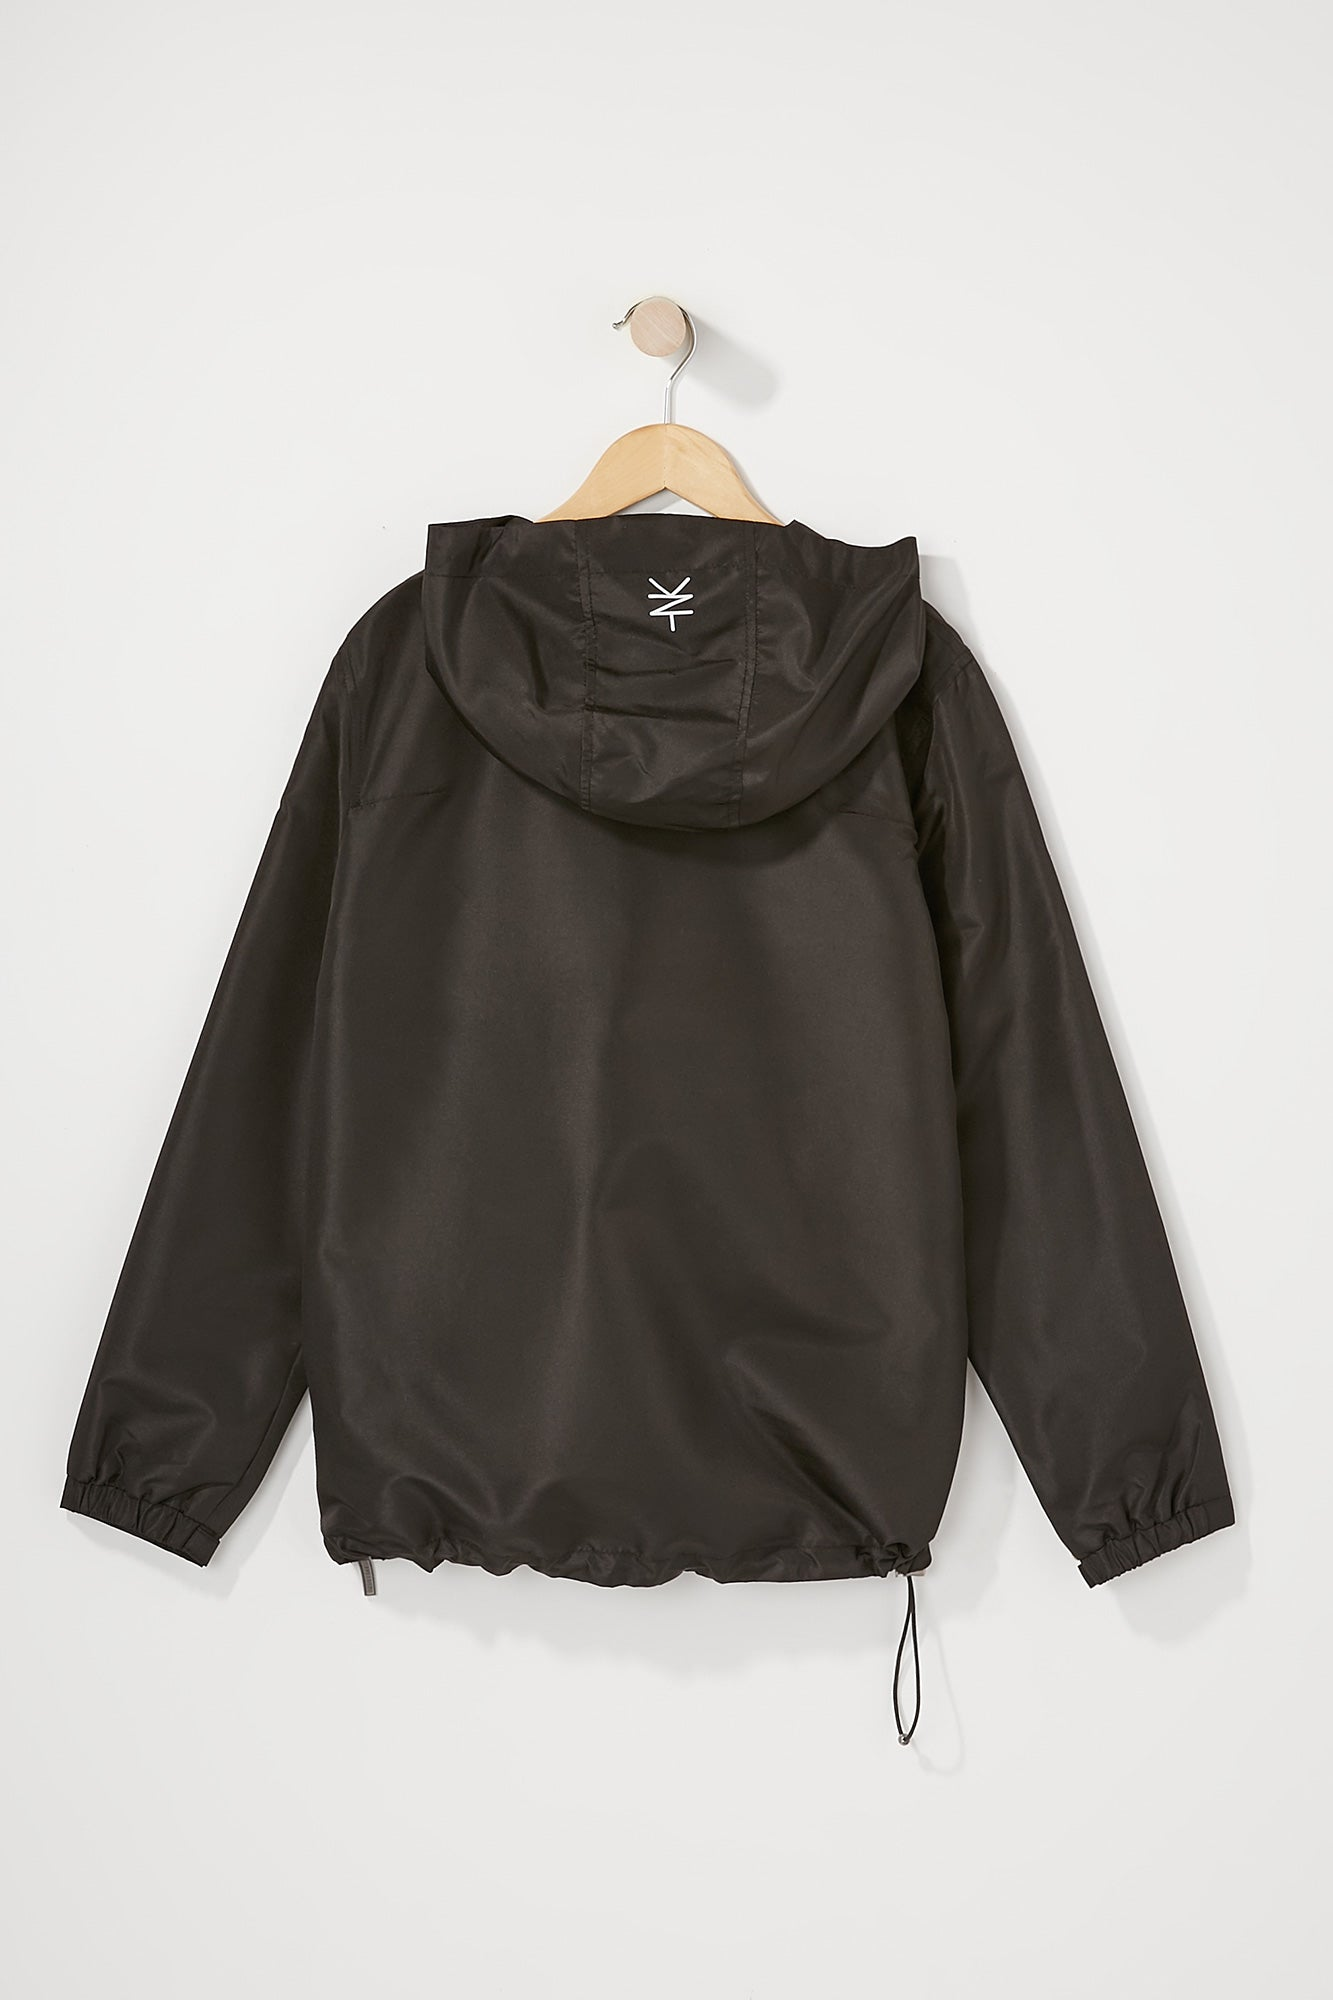 Zoo York Boys Black Windbreaker